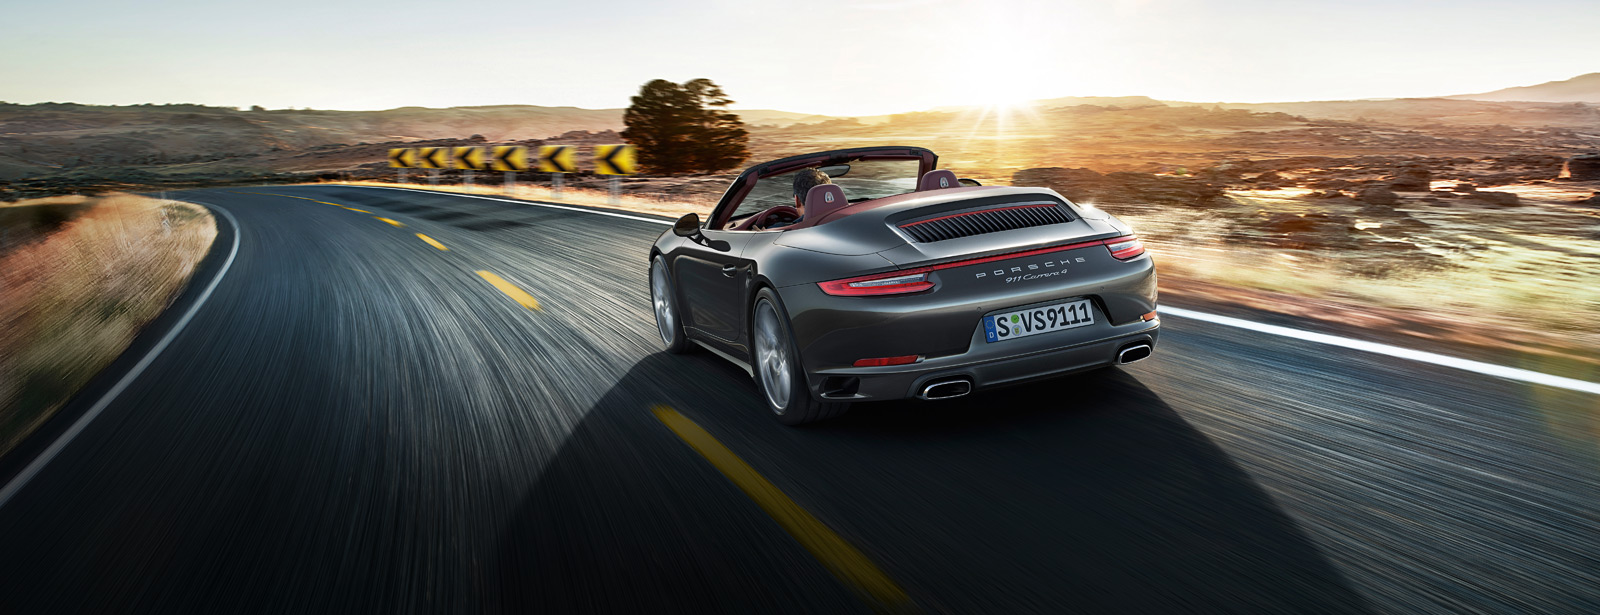 Porsche The new 911 Carrera 4 Cabriolet